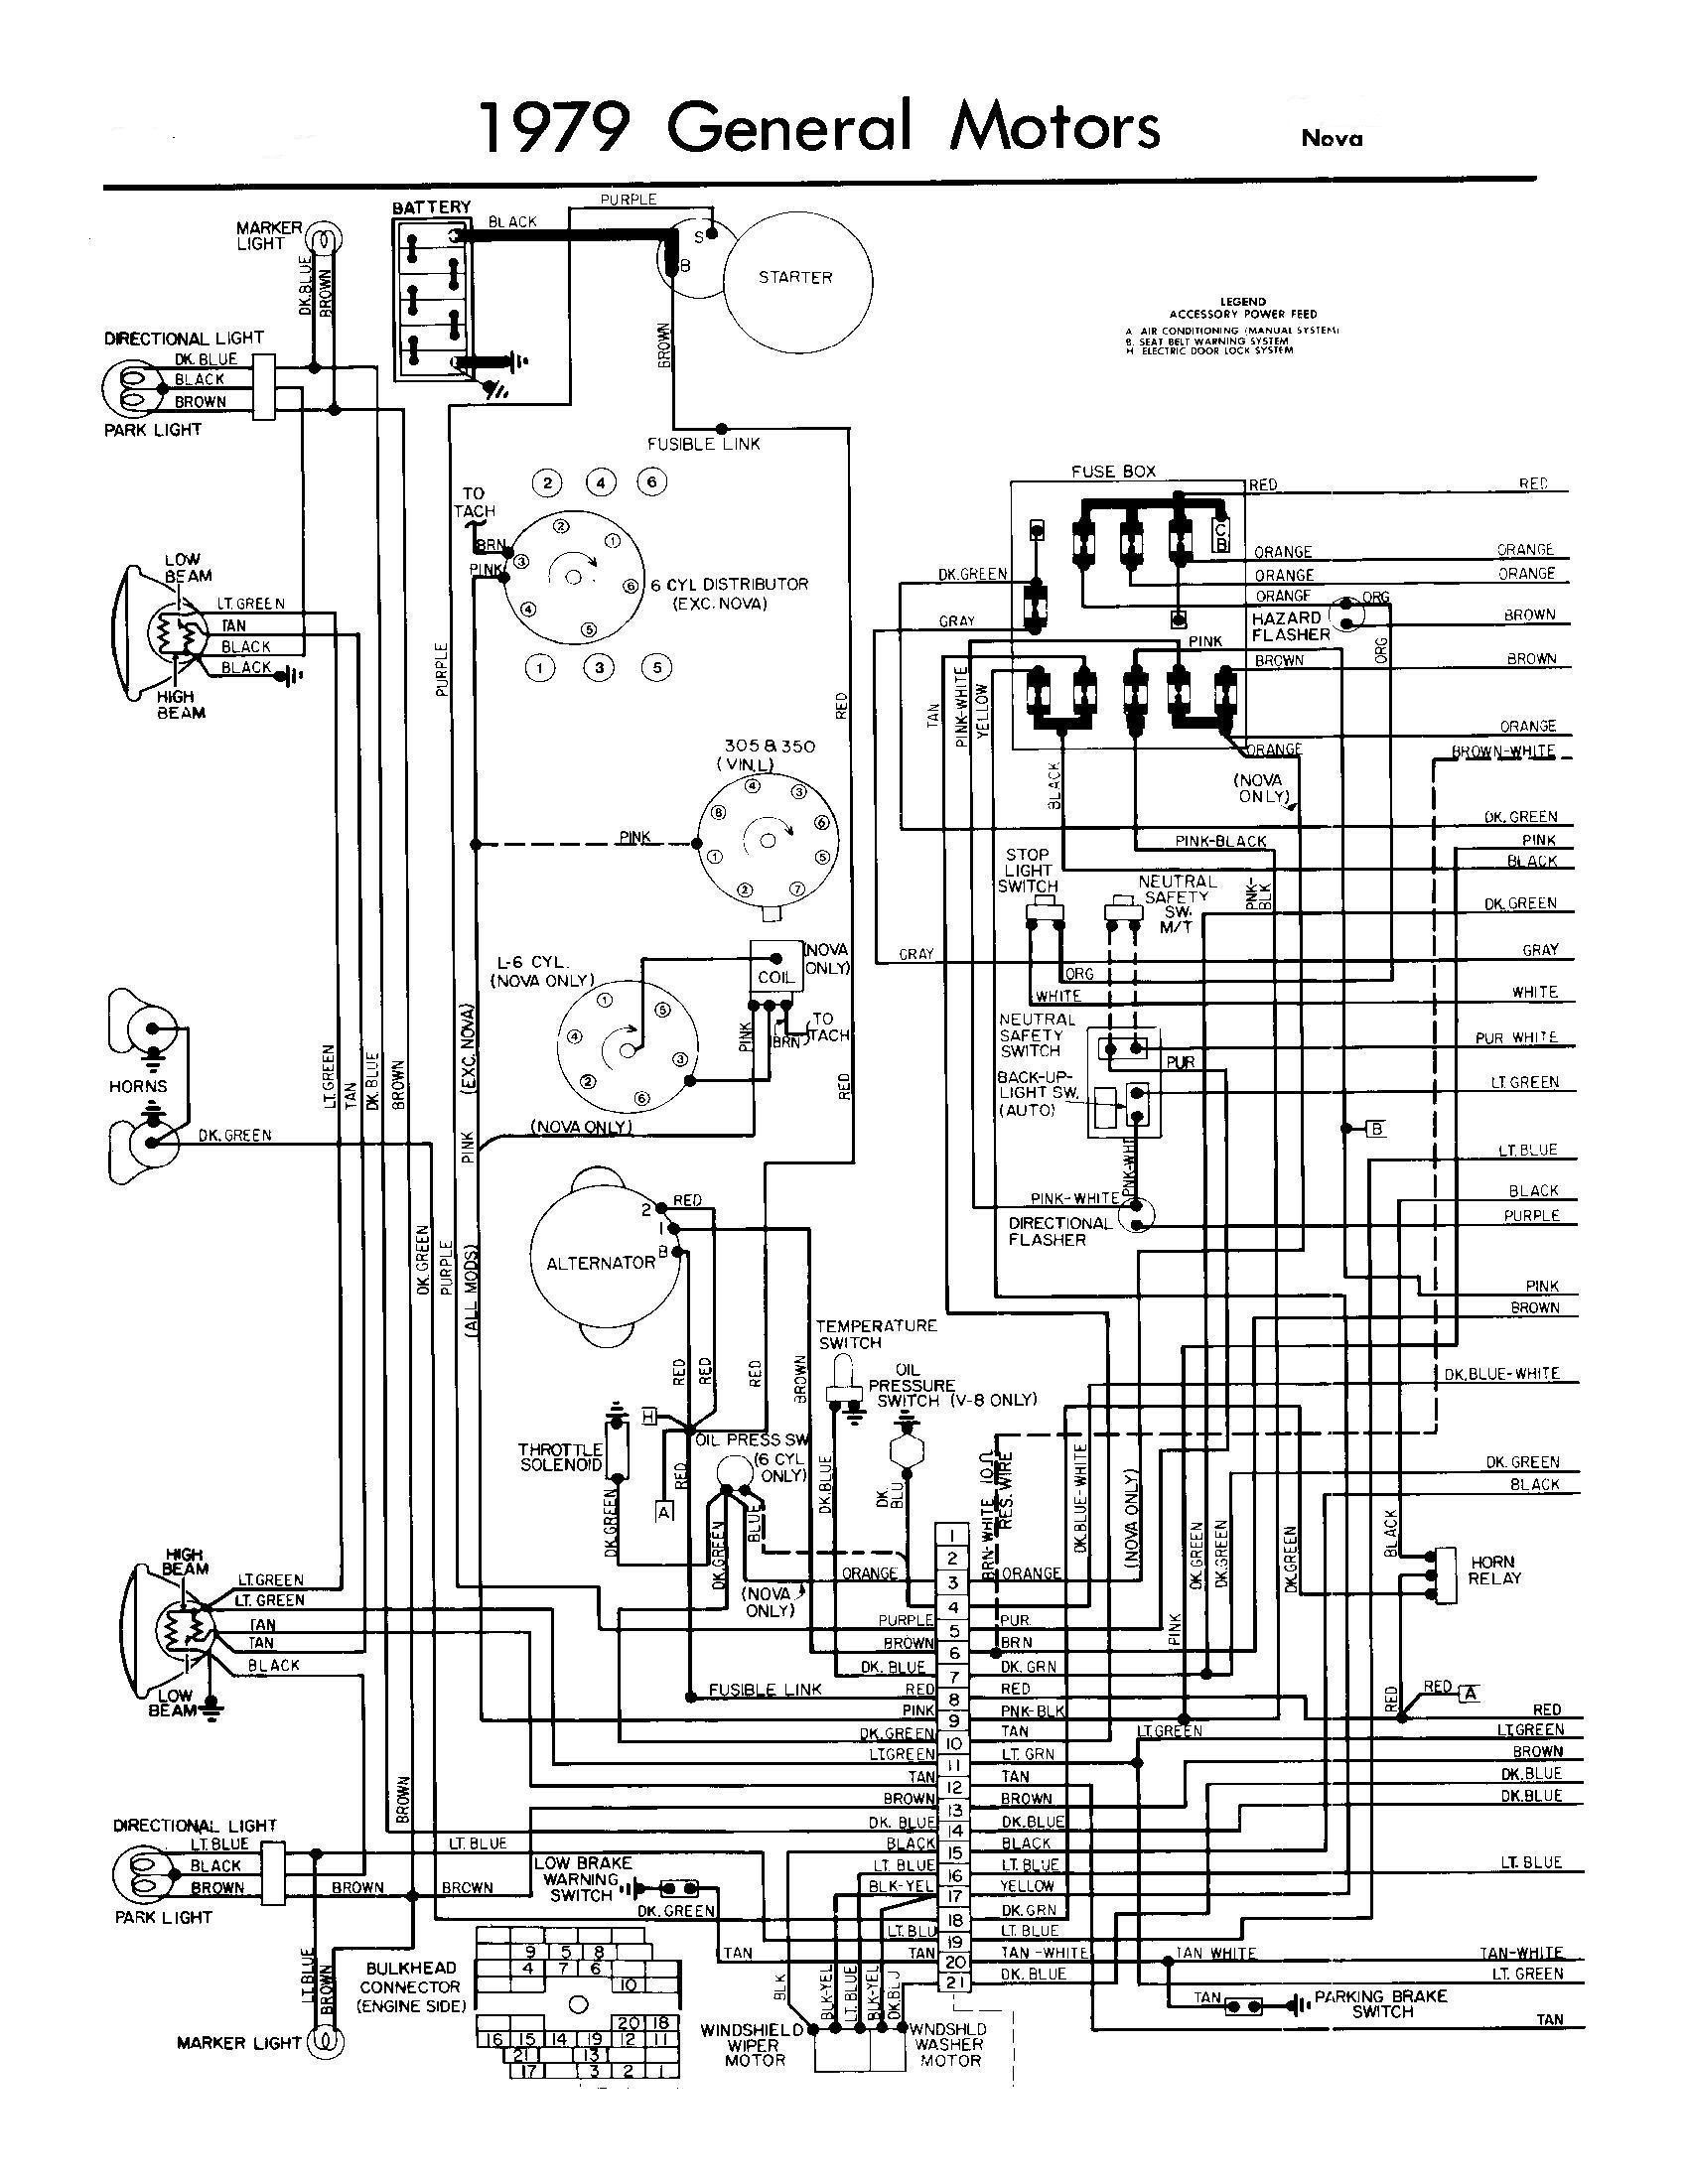 [DIAGRAM] 1981 Corvette Wiper Wiring Diagram FULL Version